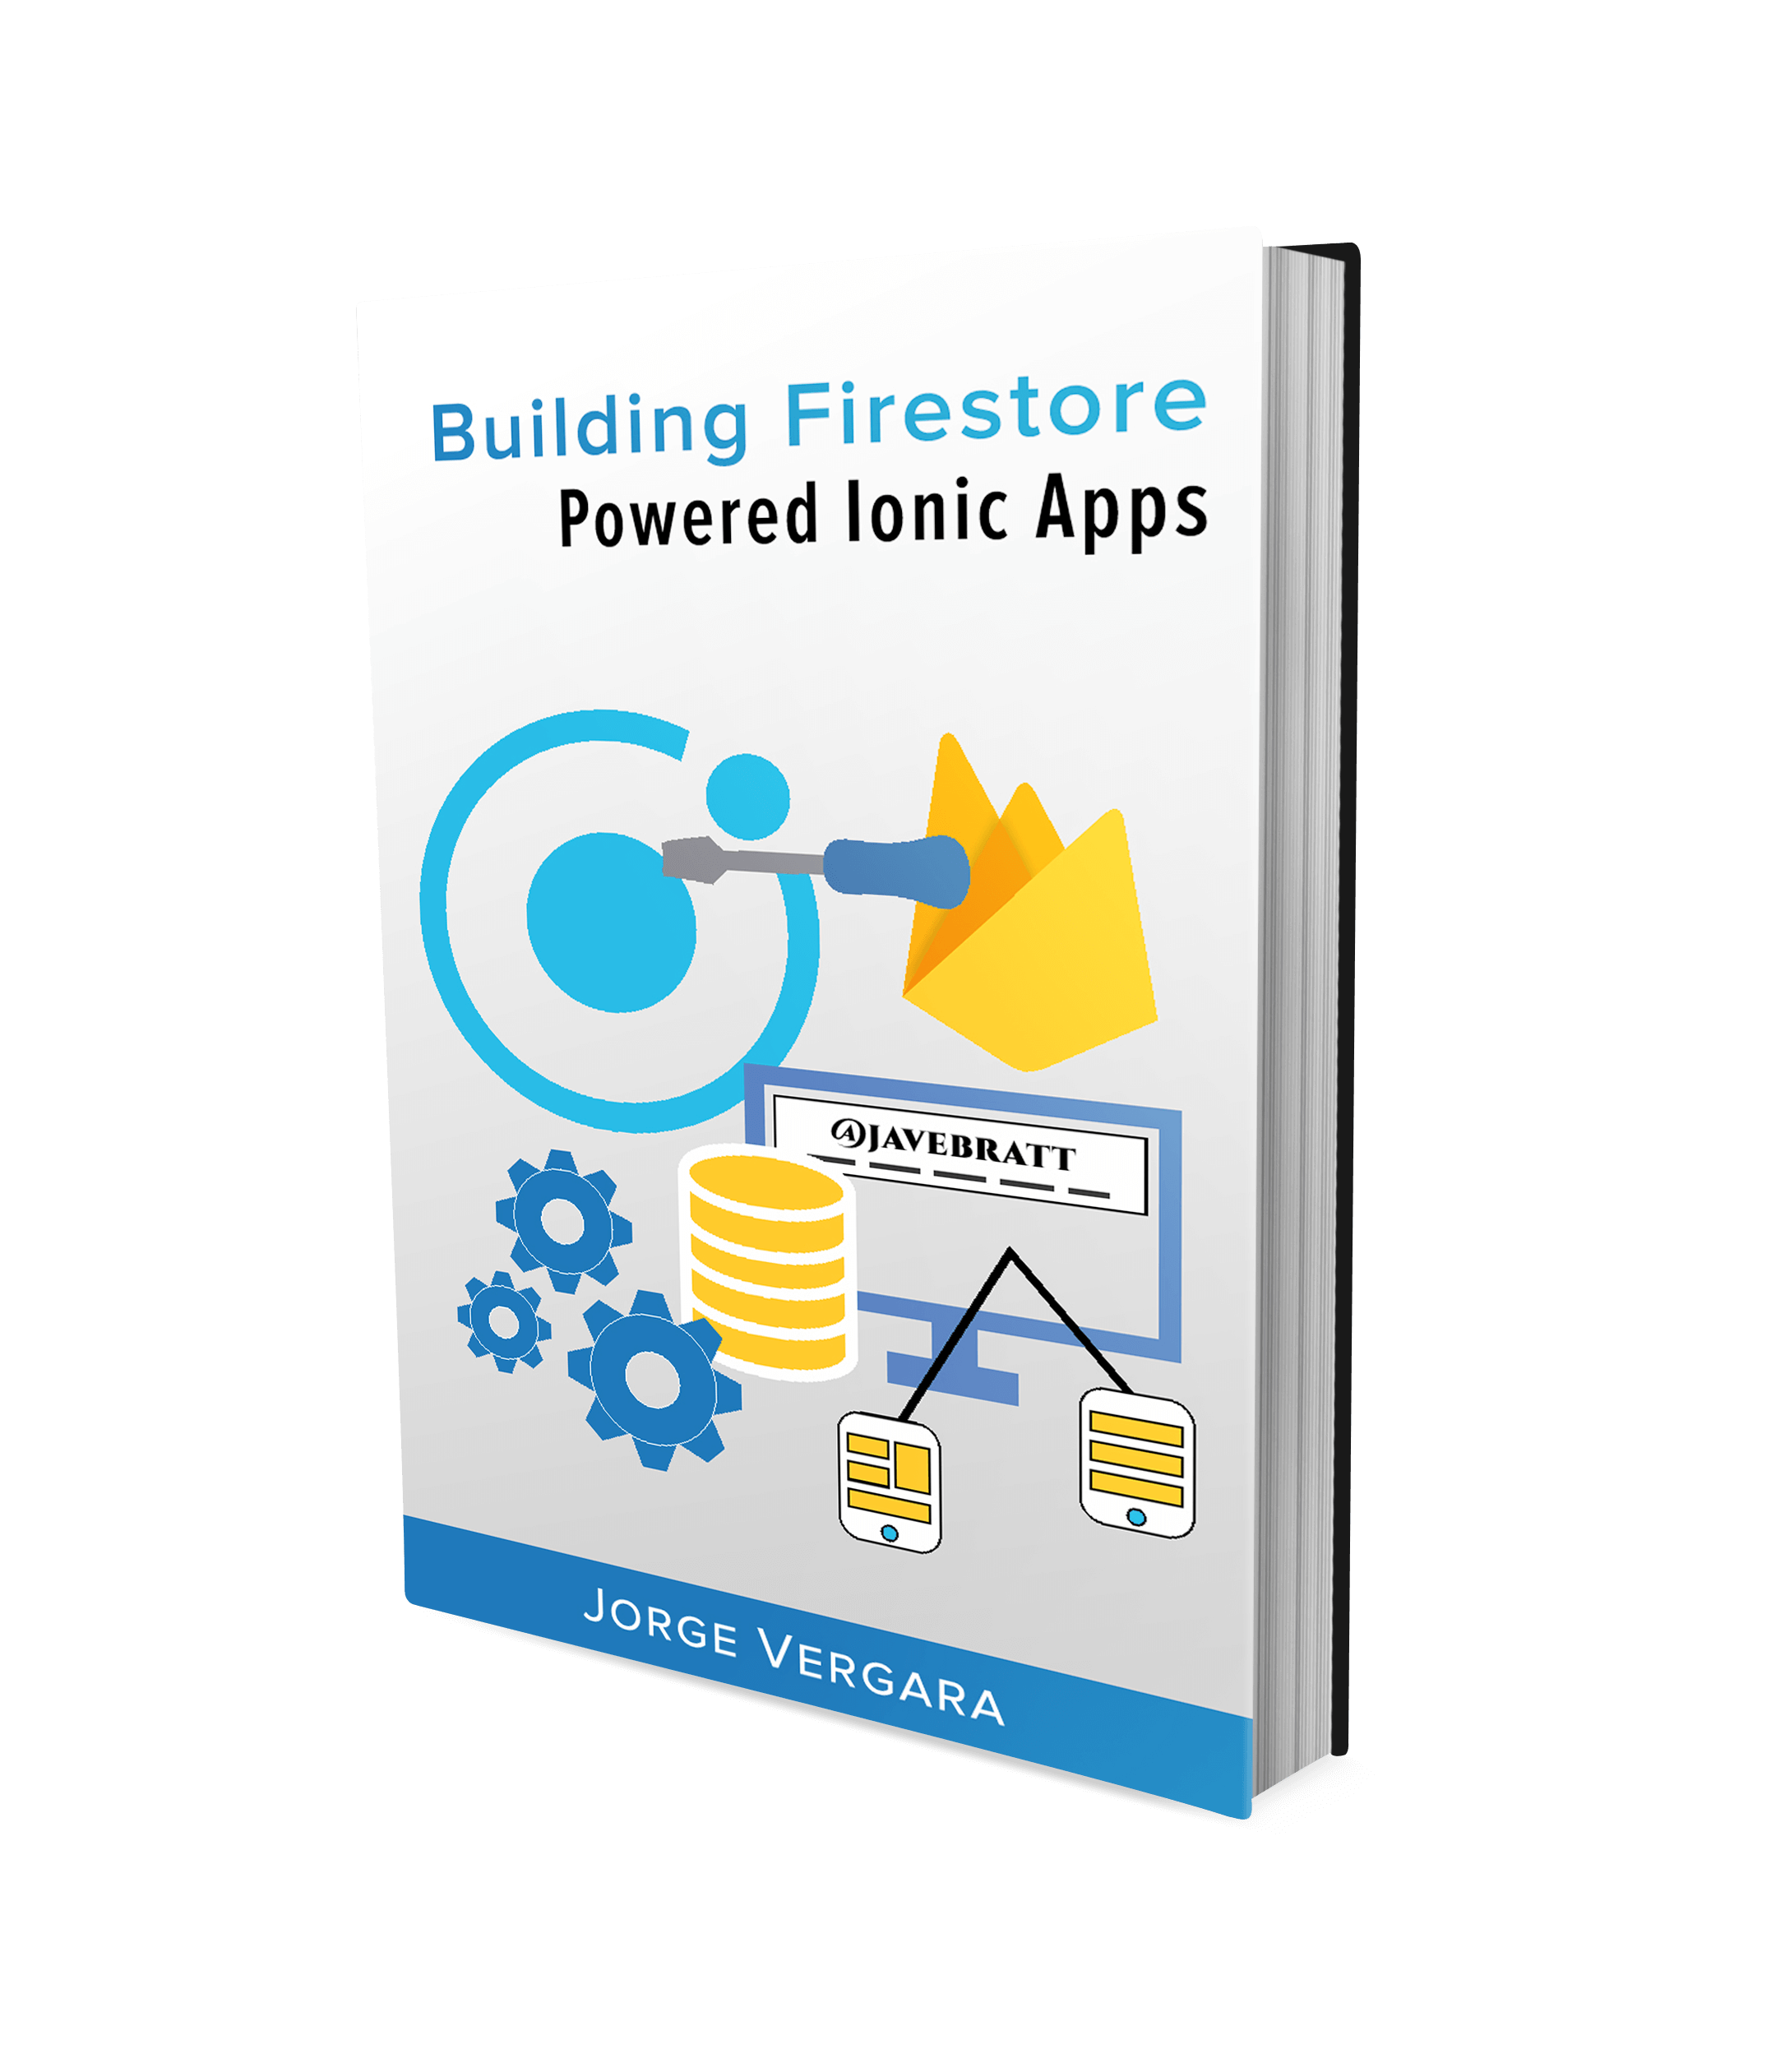 Stop wasting time going through outdated Ionic & Firebase